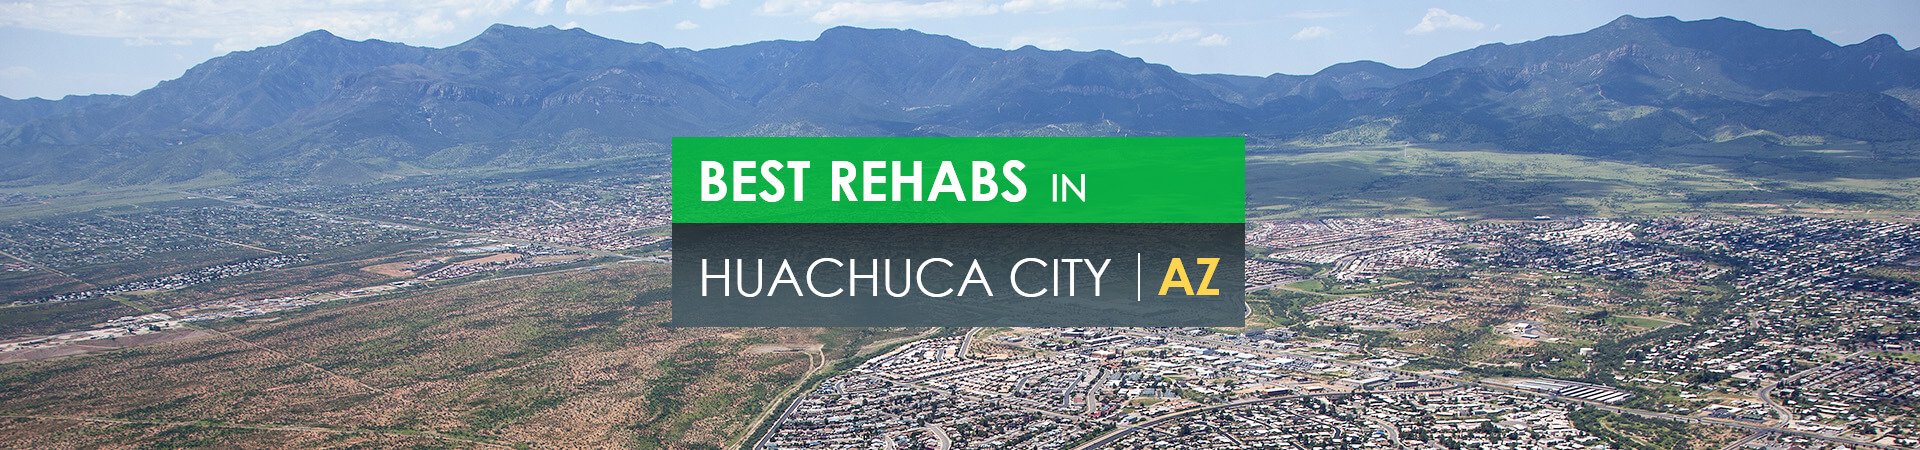 Best rehabs in Huachuca City, AZ